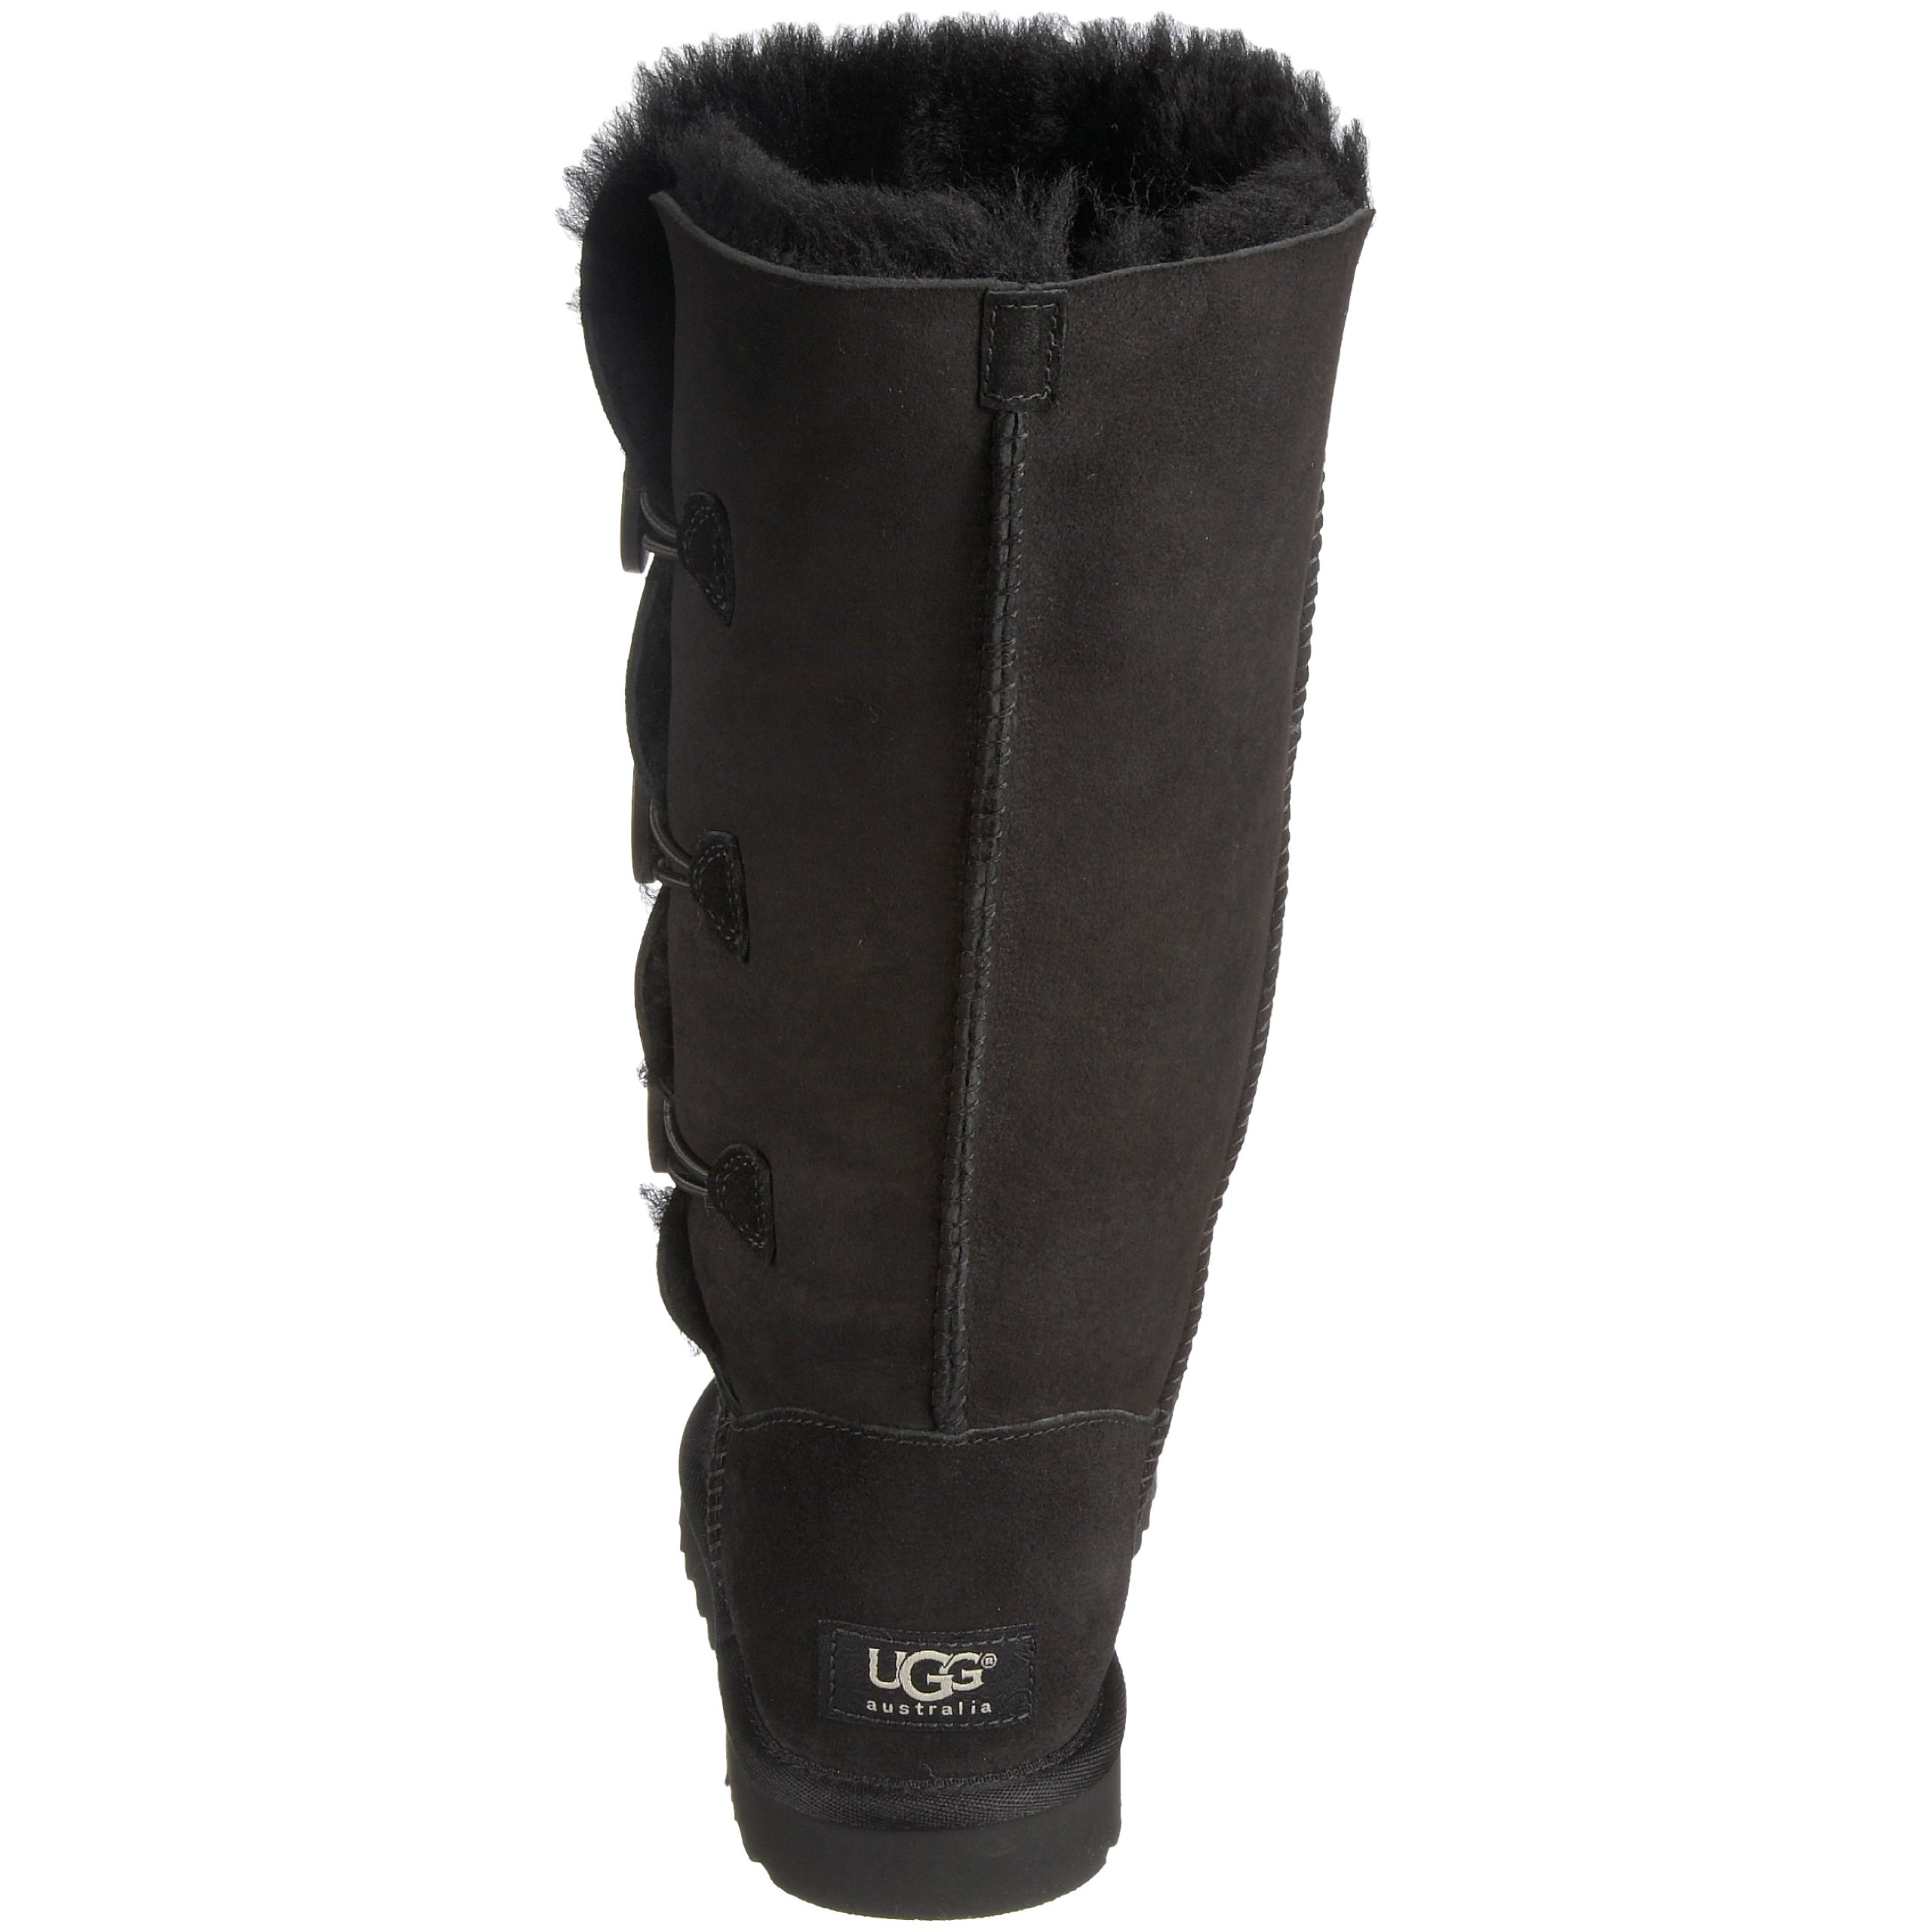 Ugg Women's Bailey Button Triplet Boot, Black, 6 M US by UGG (Image #2)